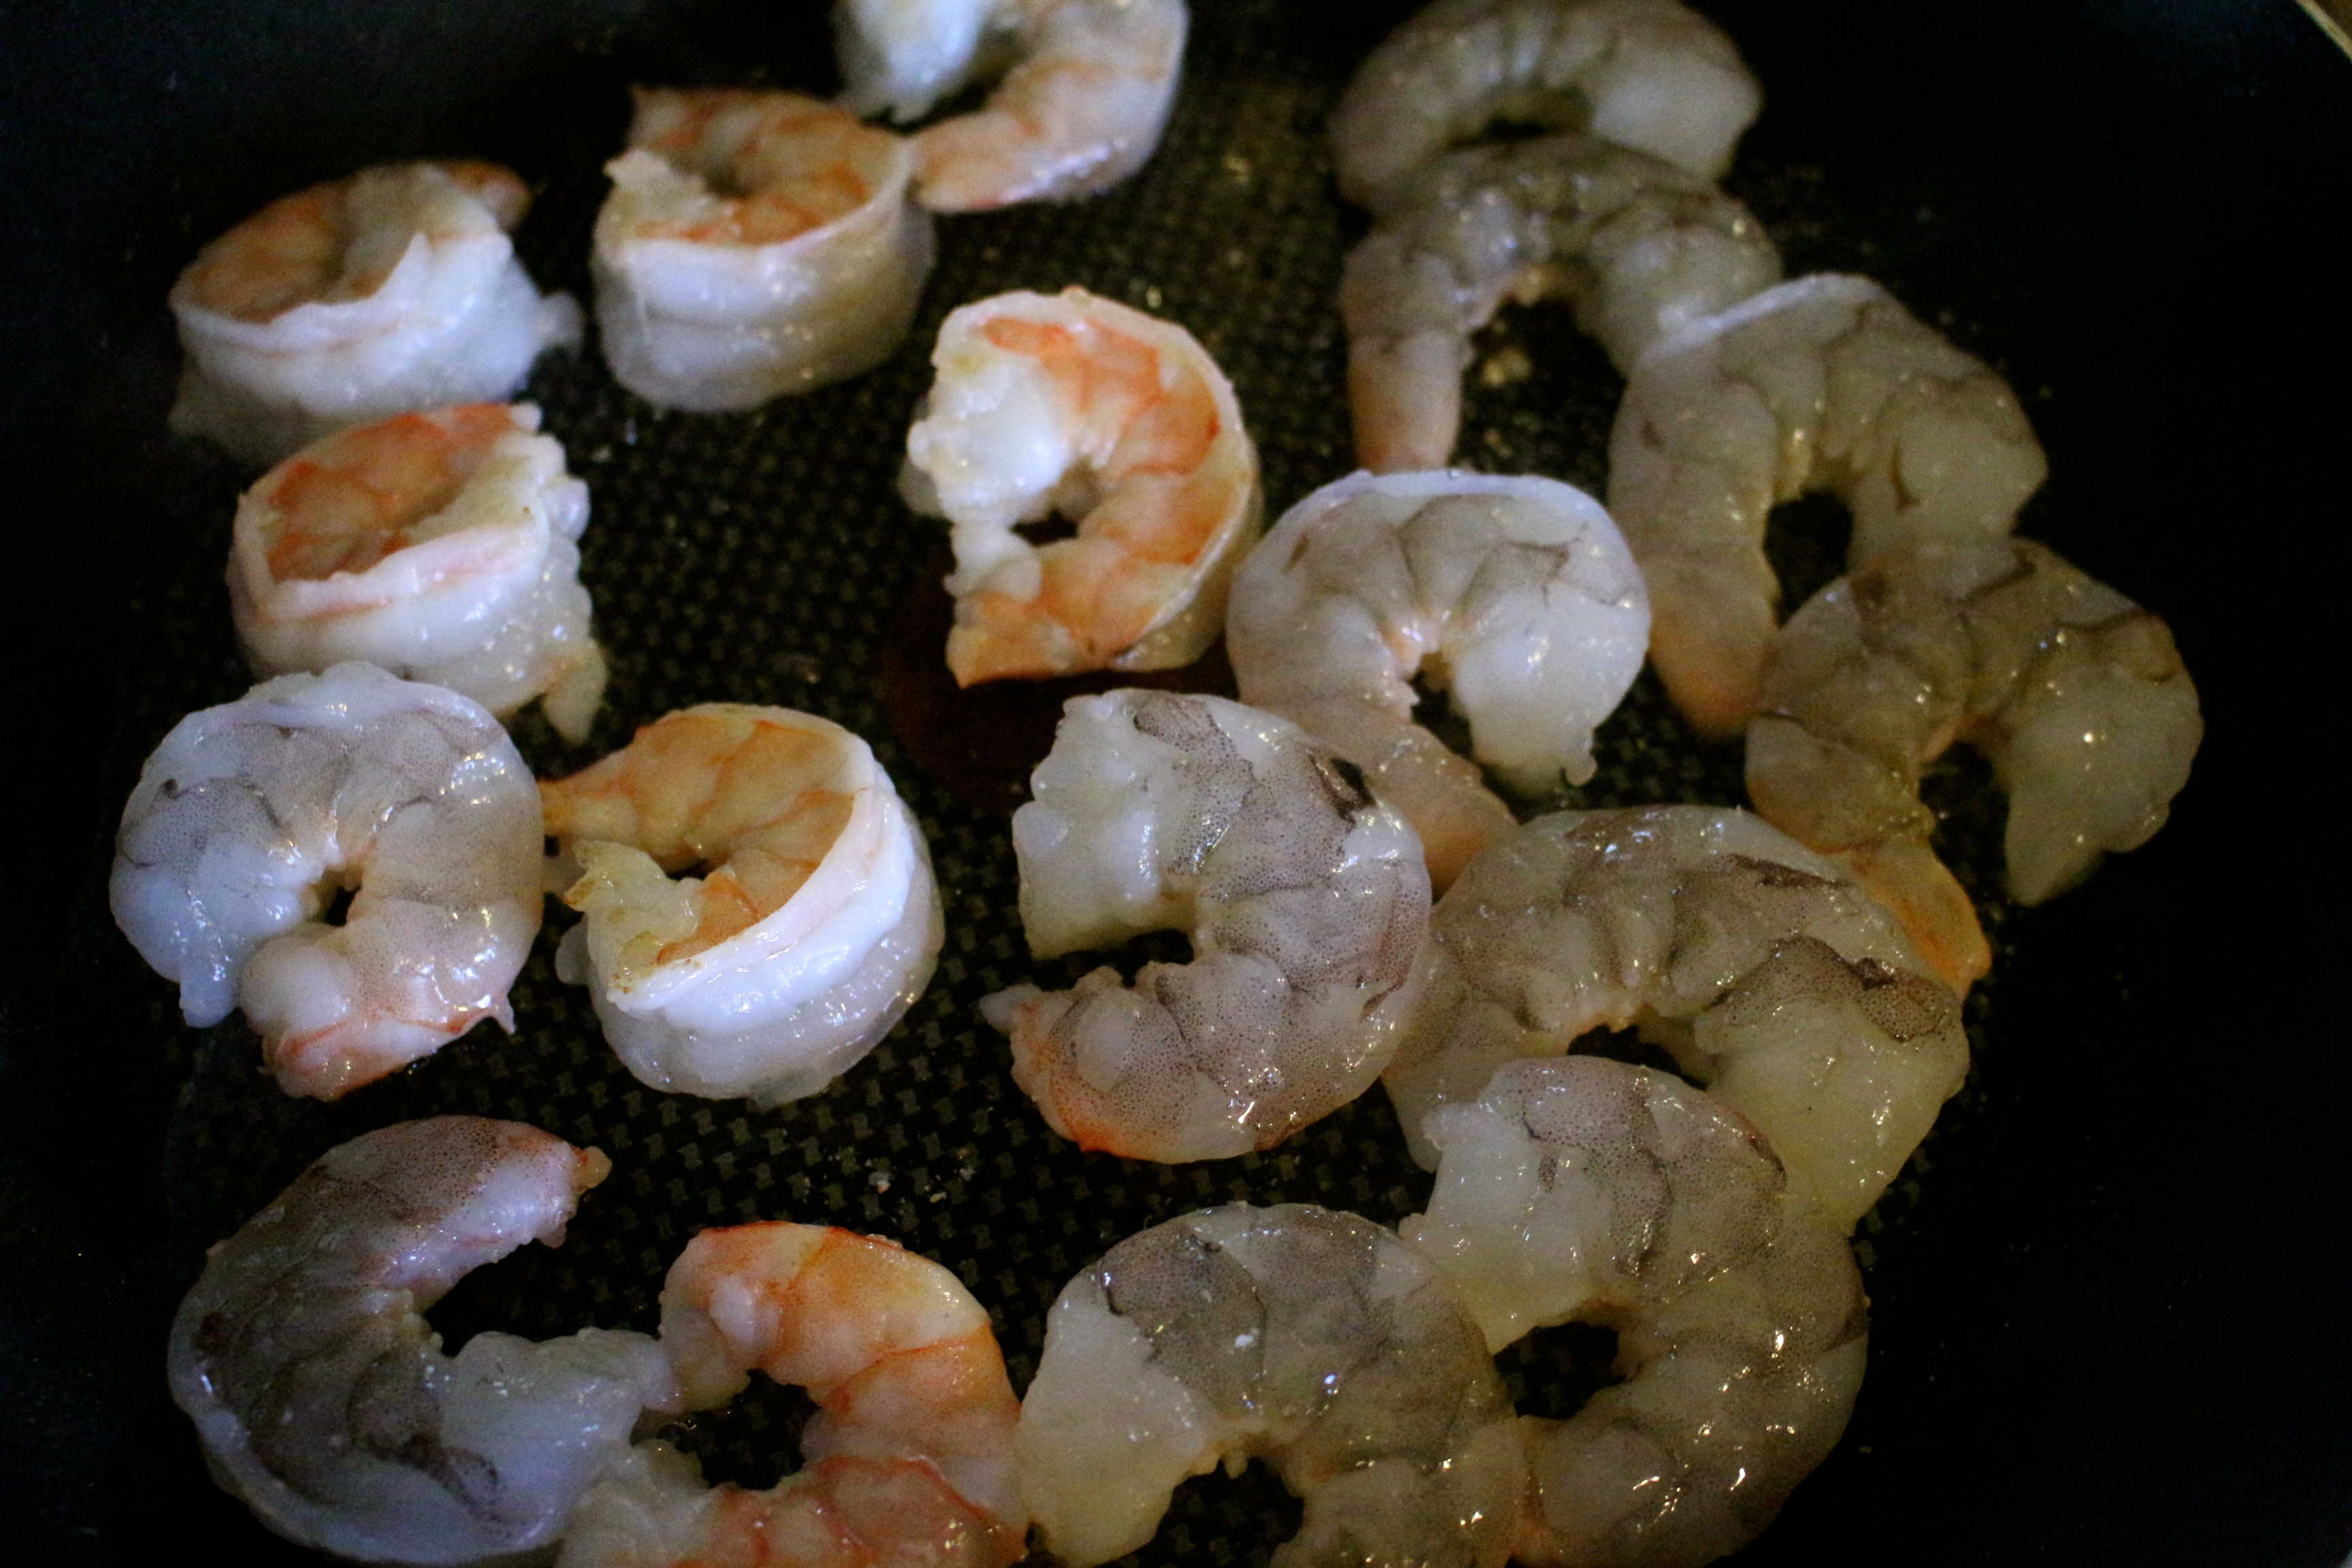 Opaque color shrimp once shrimp are cooked - Now You Ll Just Cook The Shrimp Another 4 Minutes Or So Or Until They Are Firm And Opaque In The Center Set The Shrimp Aside To Cool